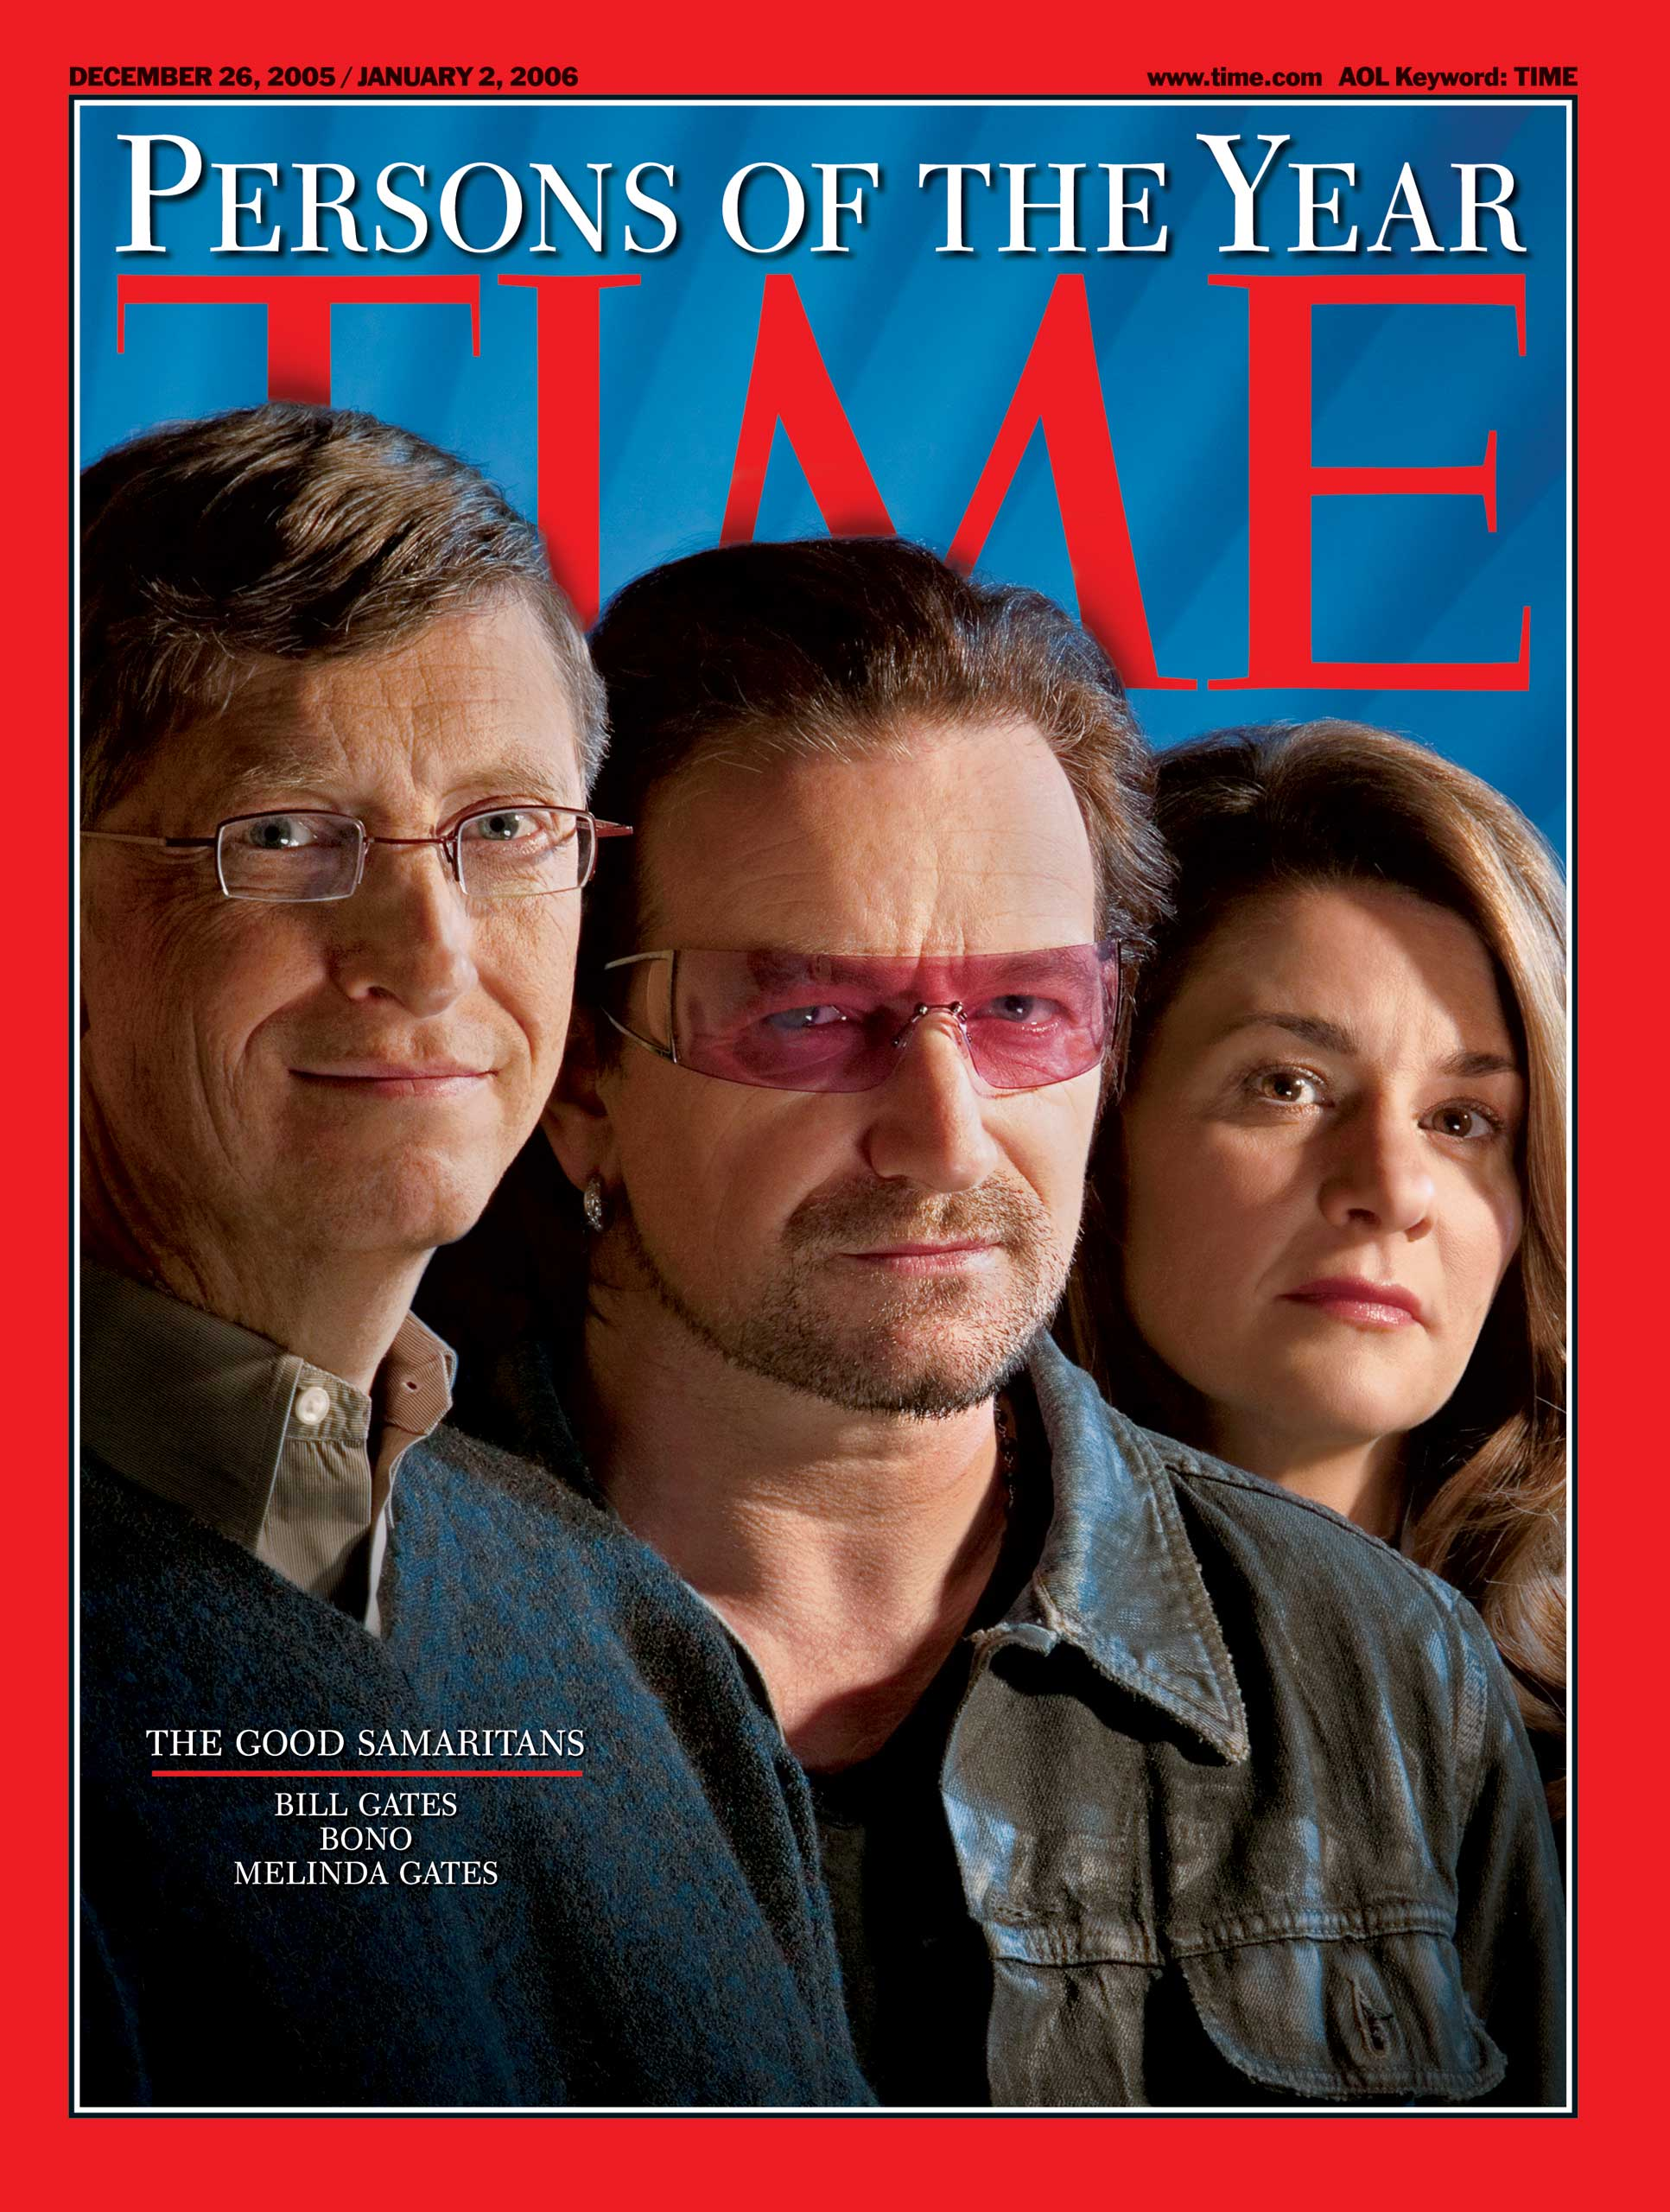 2005: The Good Samaritans: Bill Gates, Bono, Melinda Gates